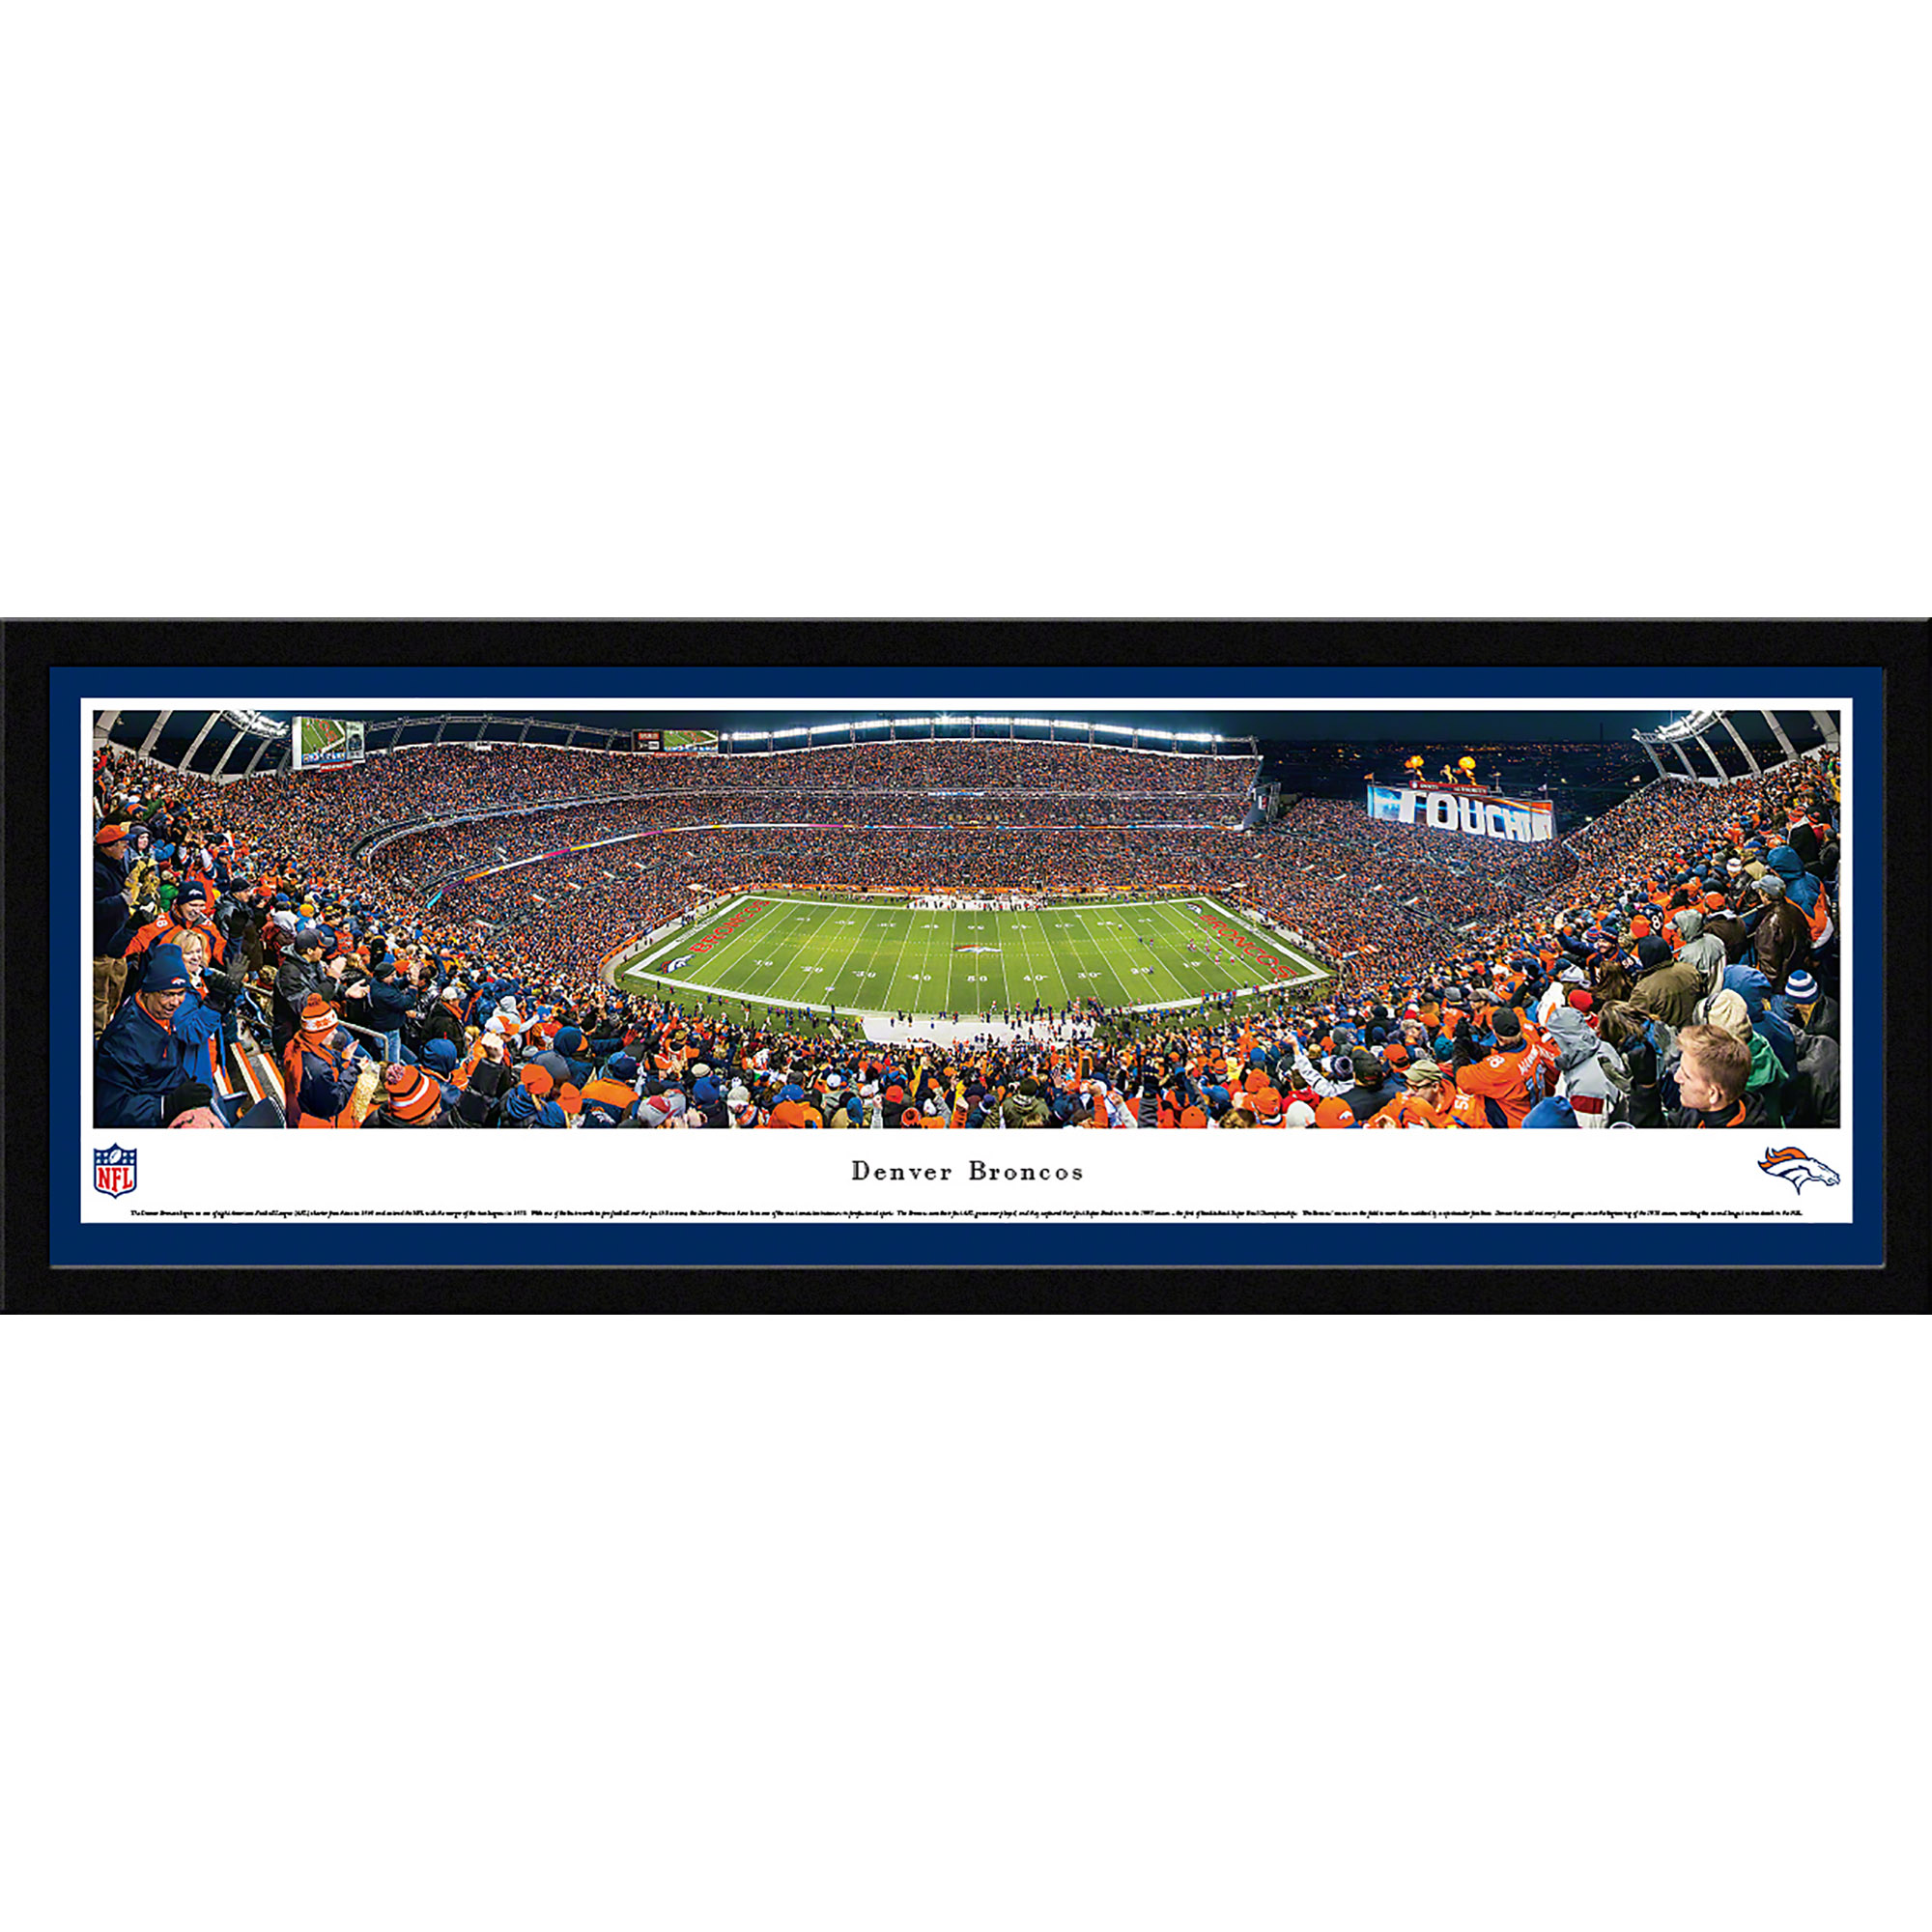 Denver Broncos - 50 Yard Line at Sports Authority Field at Mile High - Blakeway Panoramas NFL Print with Select Frame and Single Mat